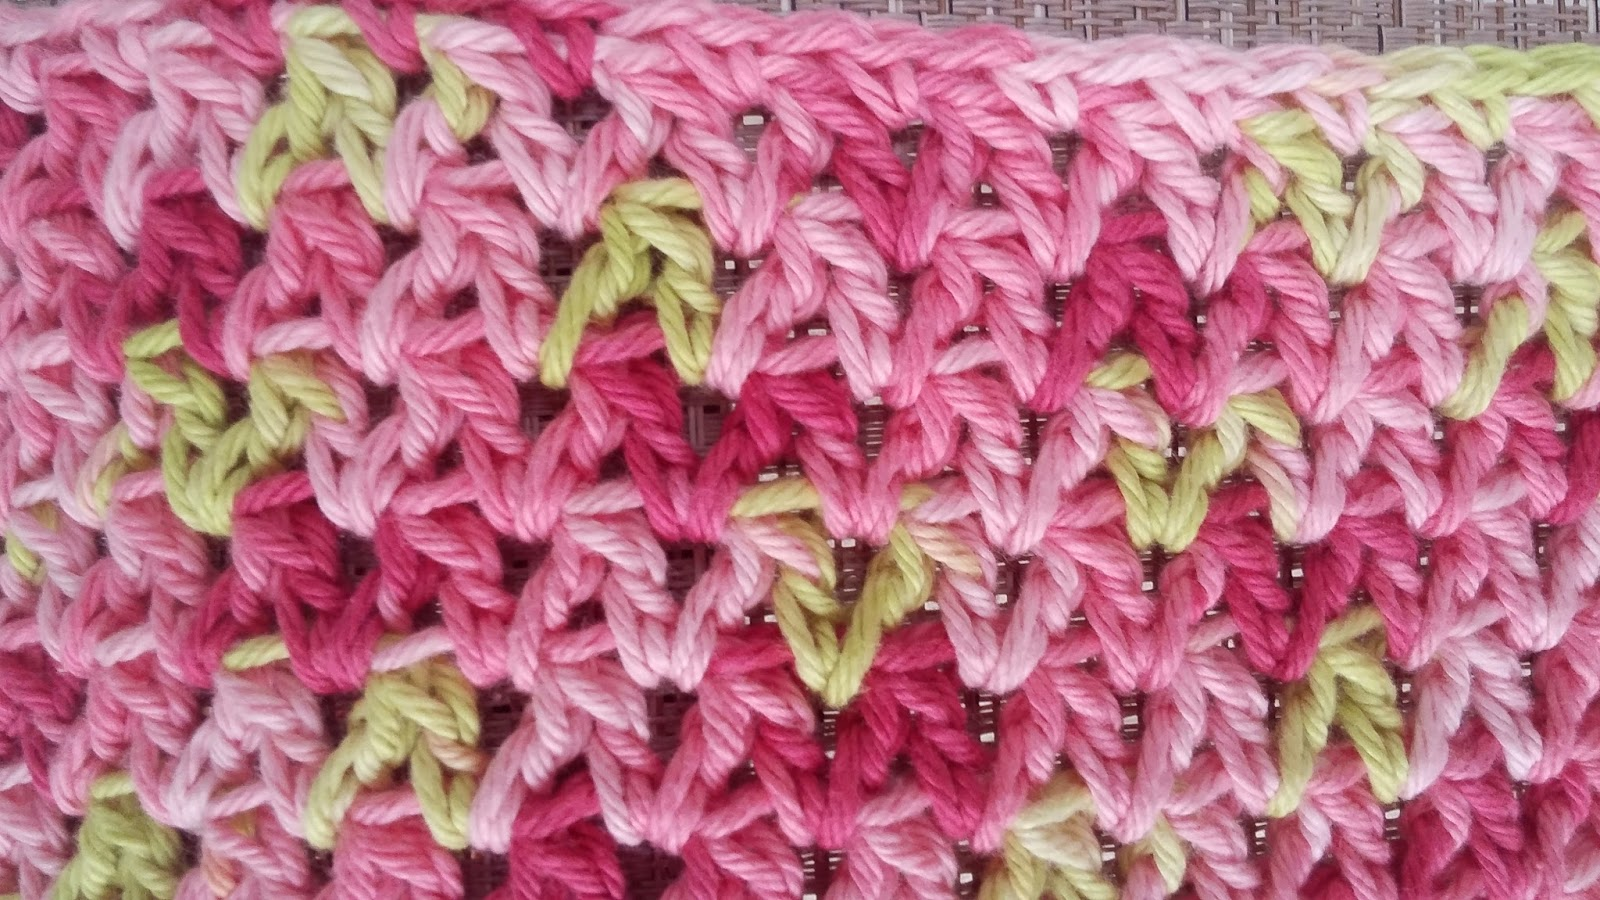 Tw-In Stitches: Wobbly Squares Blanket in Variegated Yarn | Tw-In ...